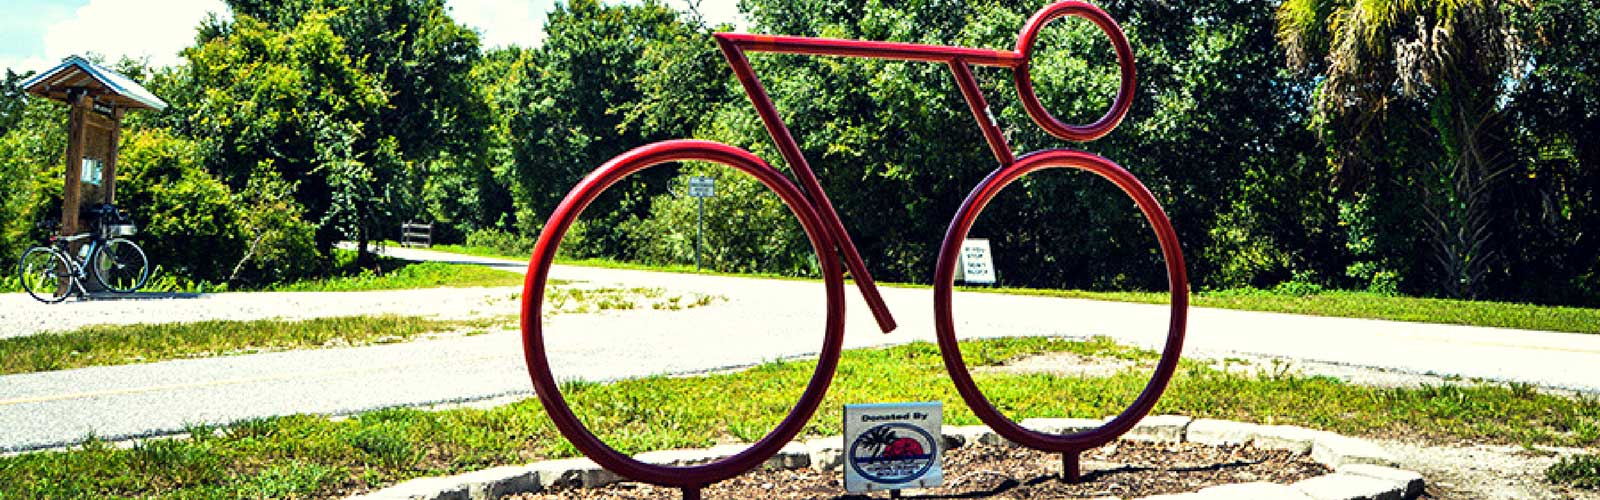 Sarasota Cycling Sculpture